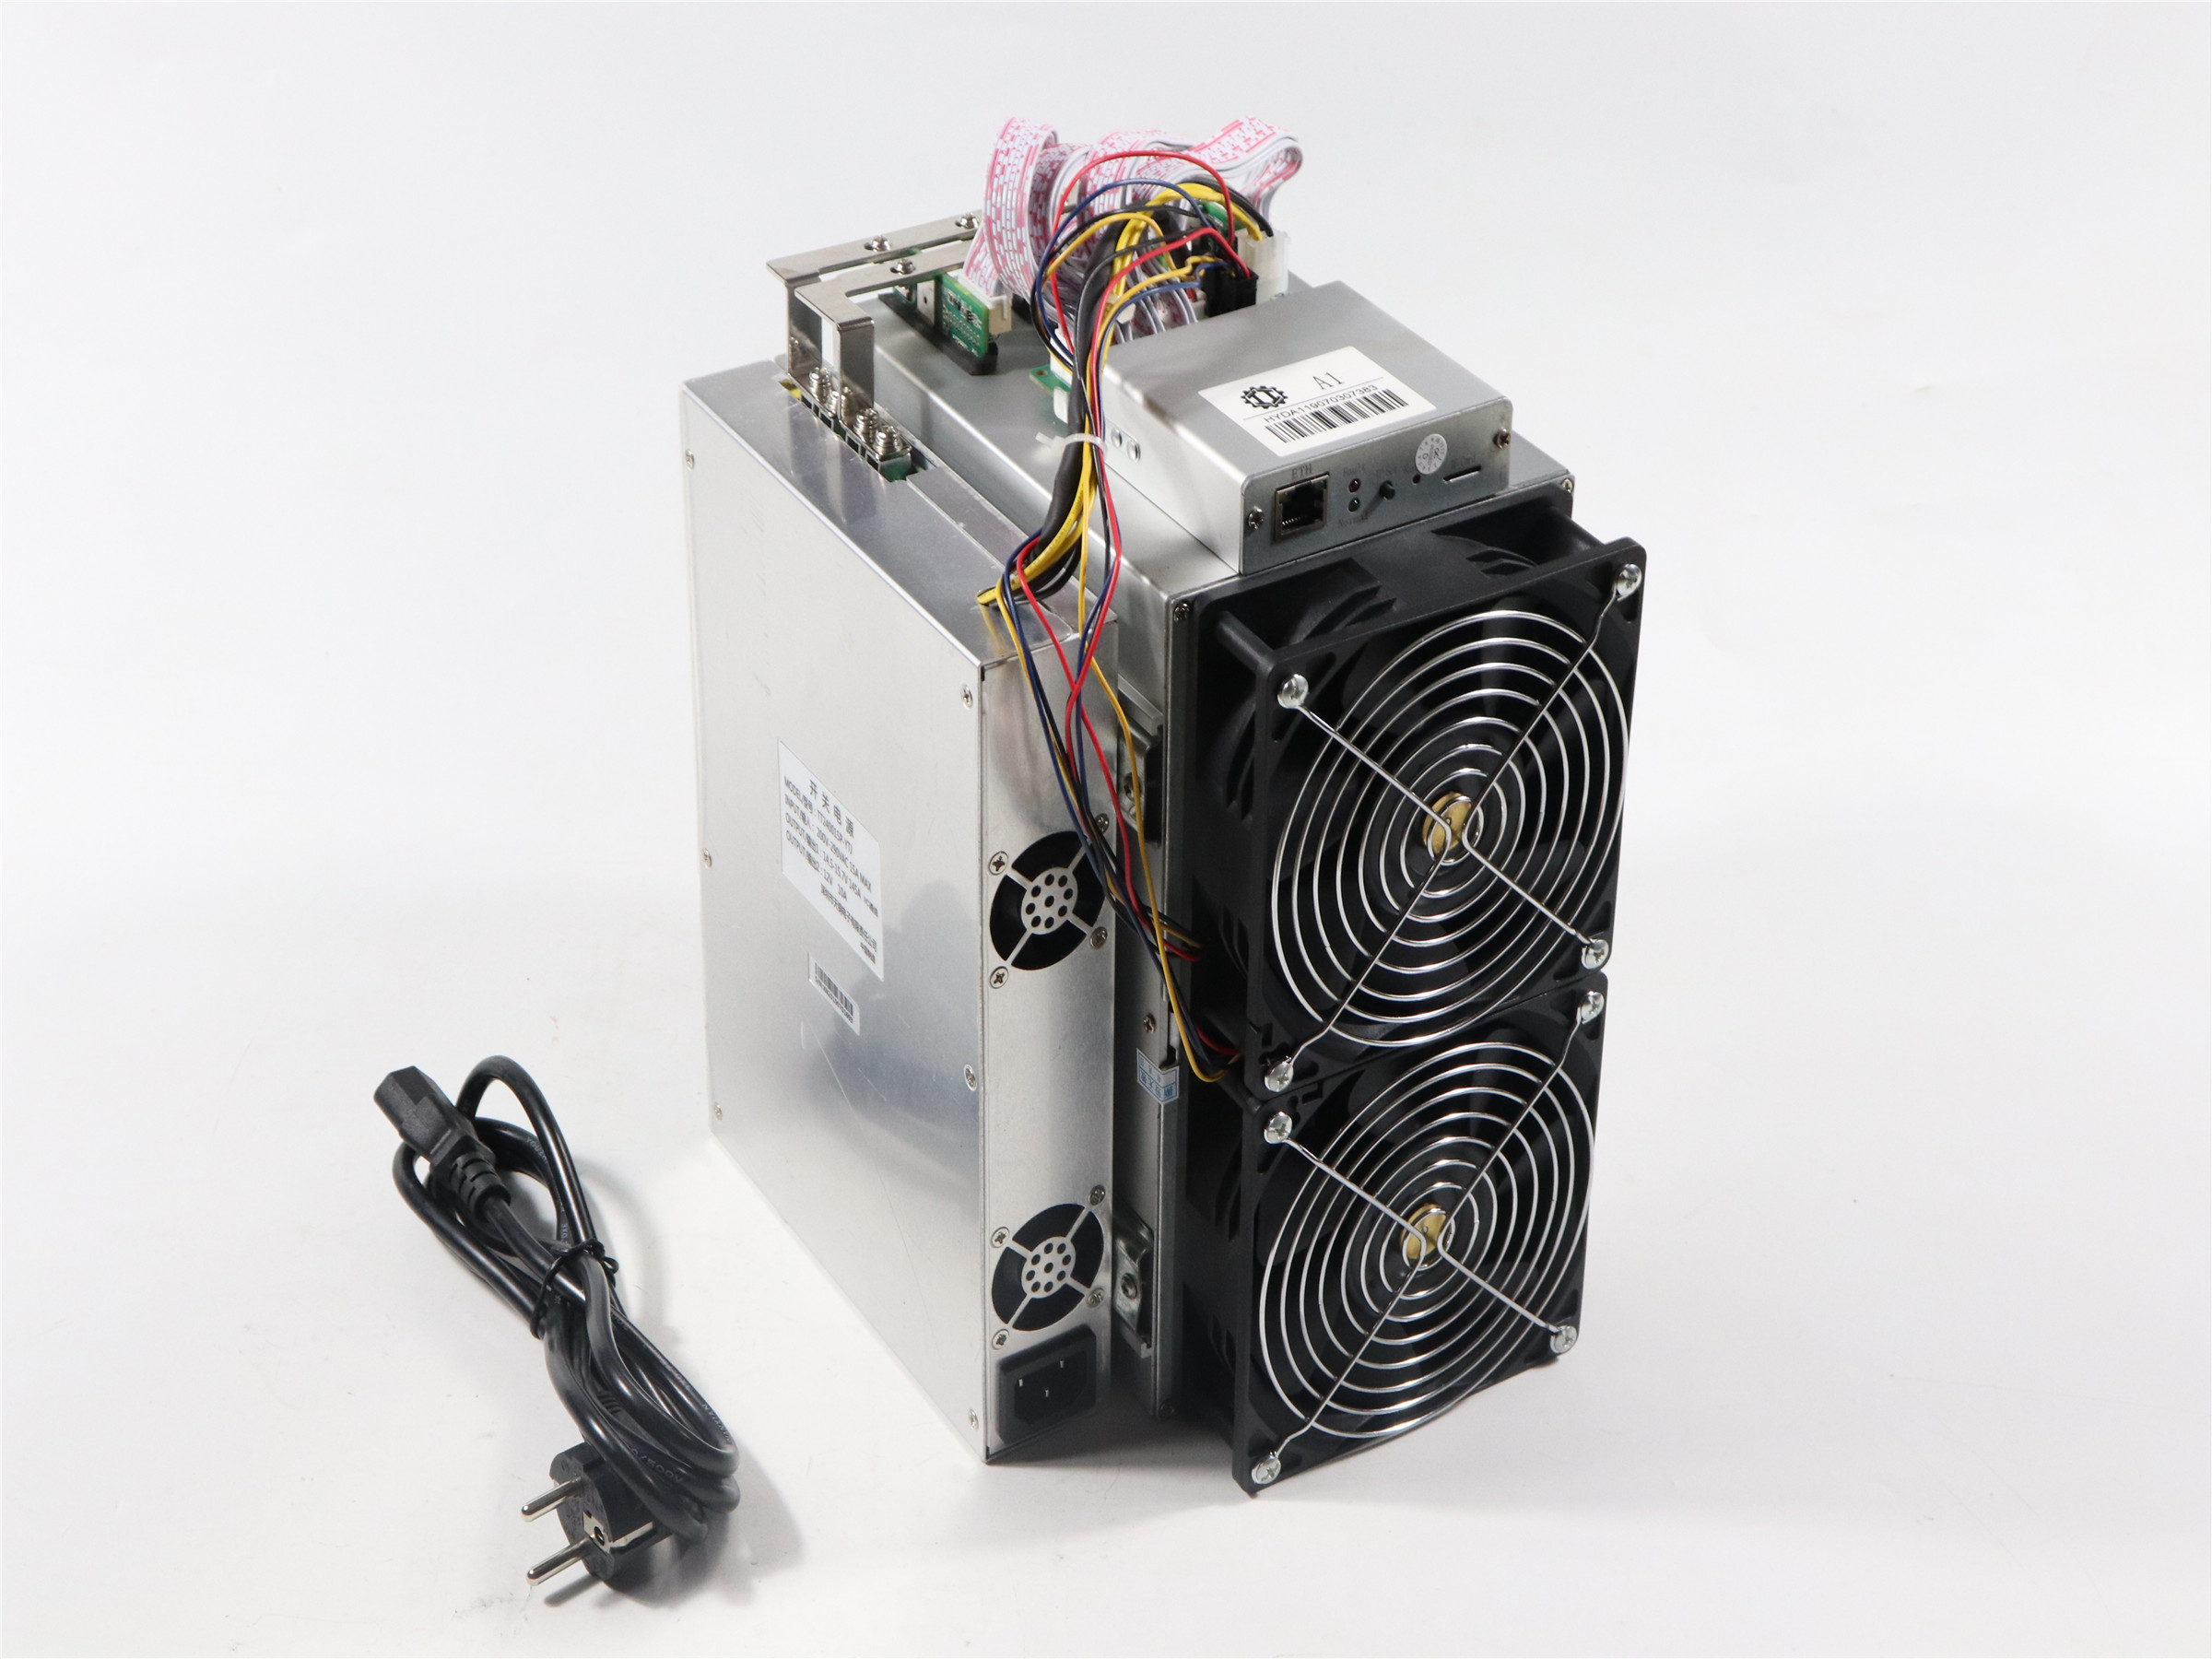 BTC BCH Miner Love Core A1 25T With PSU Economic Than Antminer S9 S11 S15 S17 T9+ T15